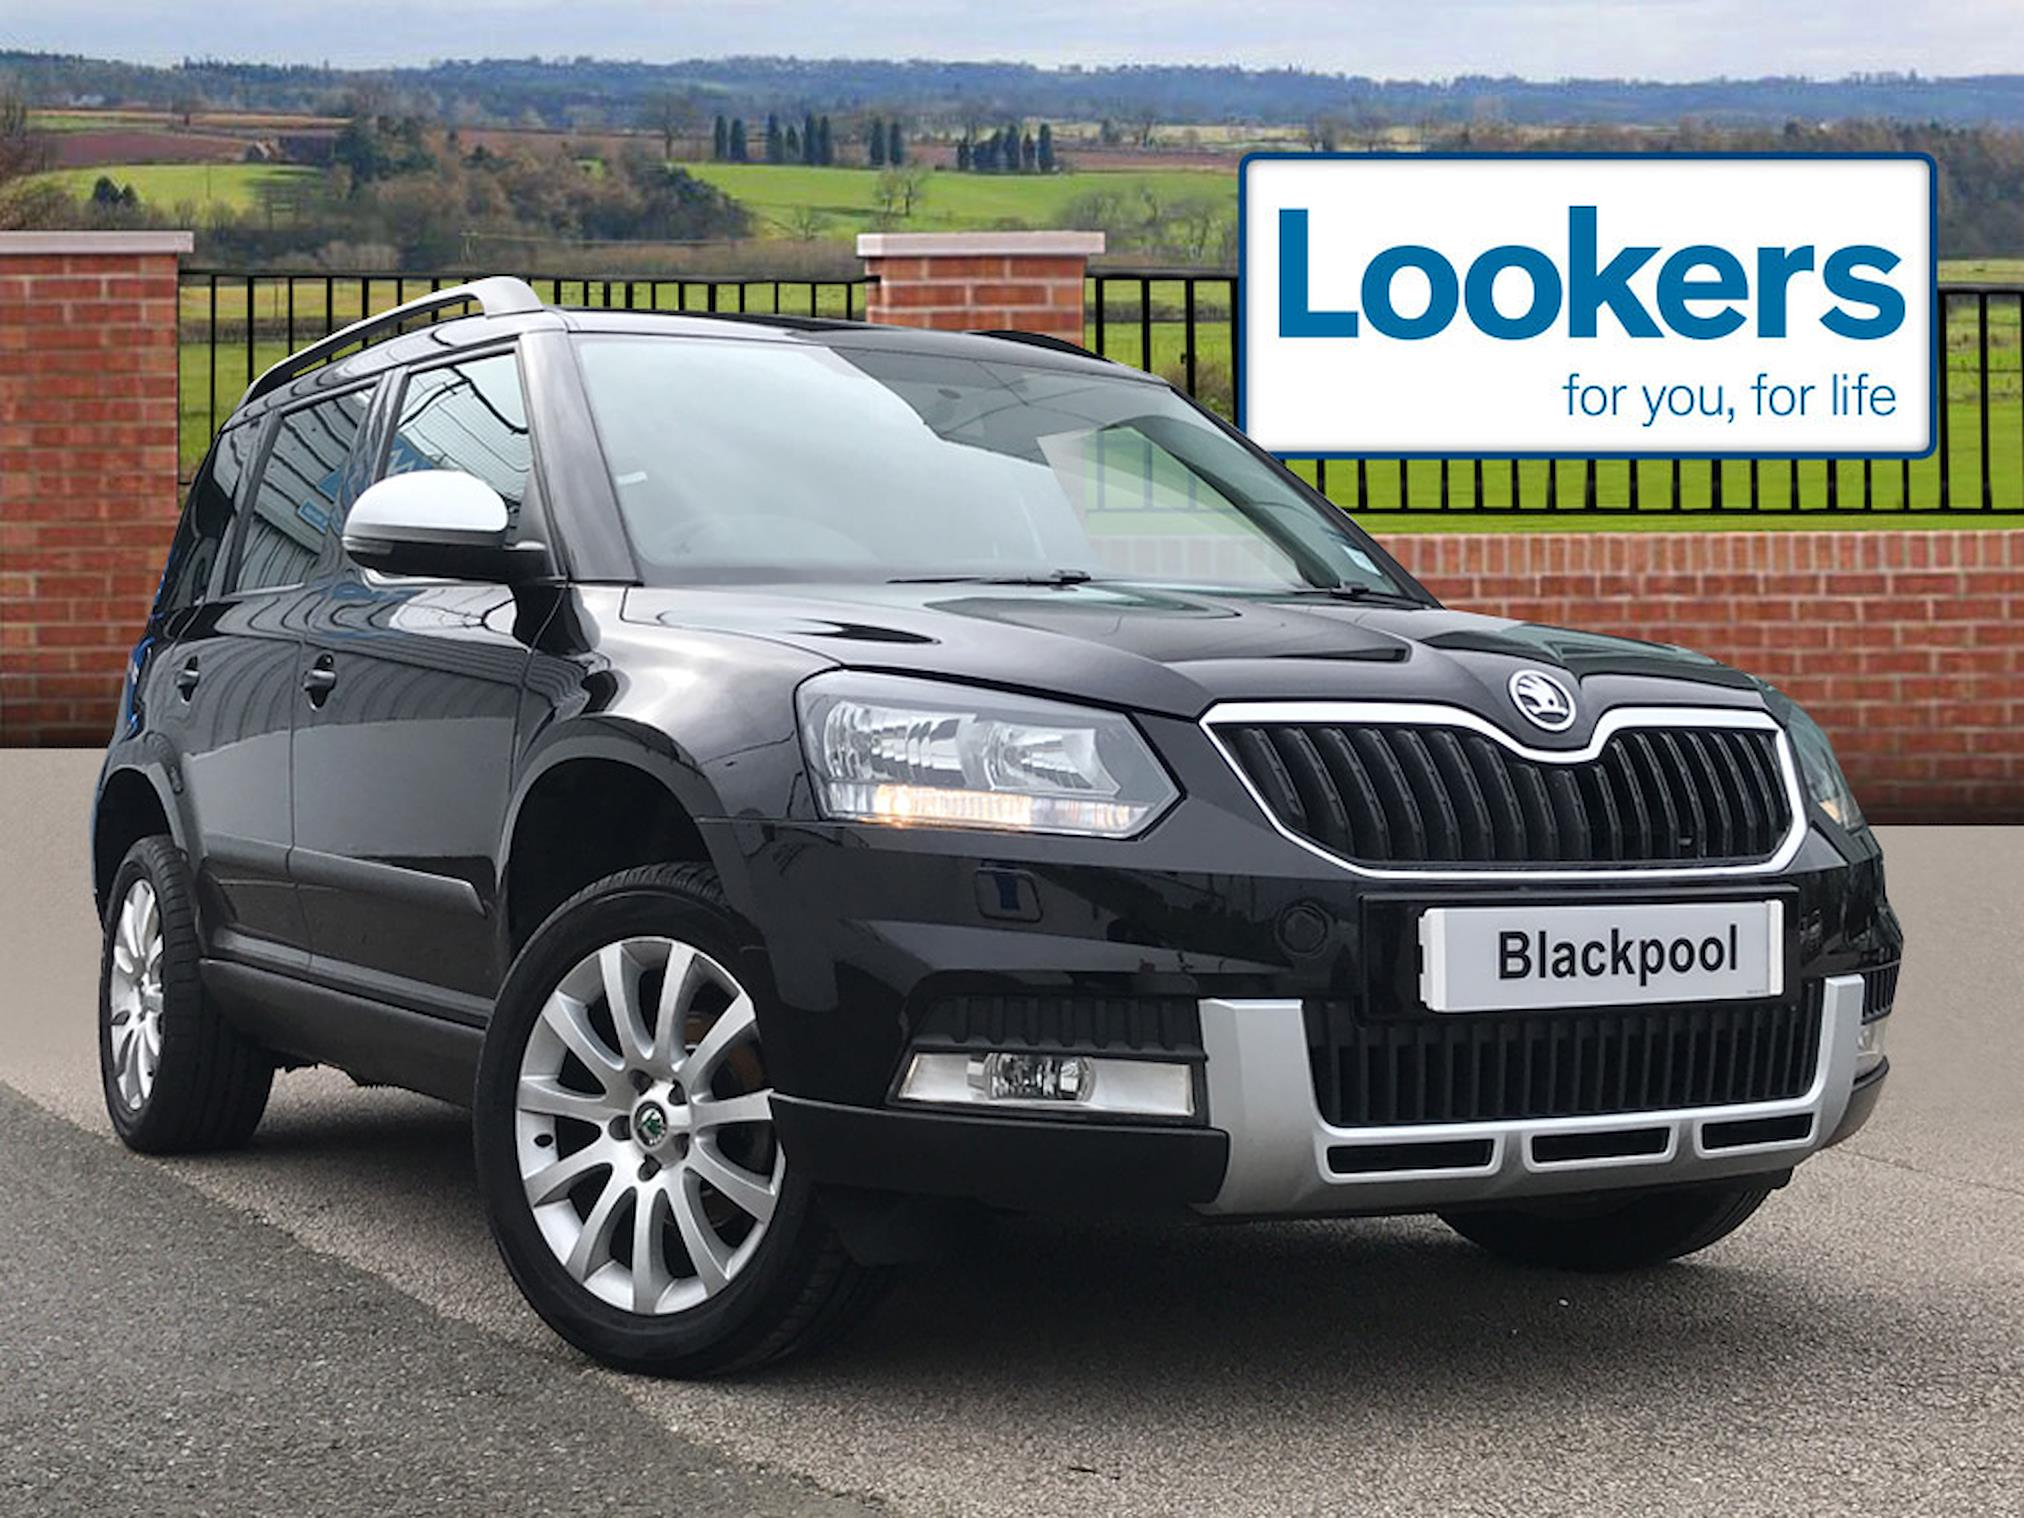 Used YETI OUTDOOR SKODA 1 2 Tsi [110] Se 5Dr Dsg 2017 | Lookers